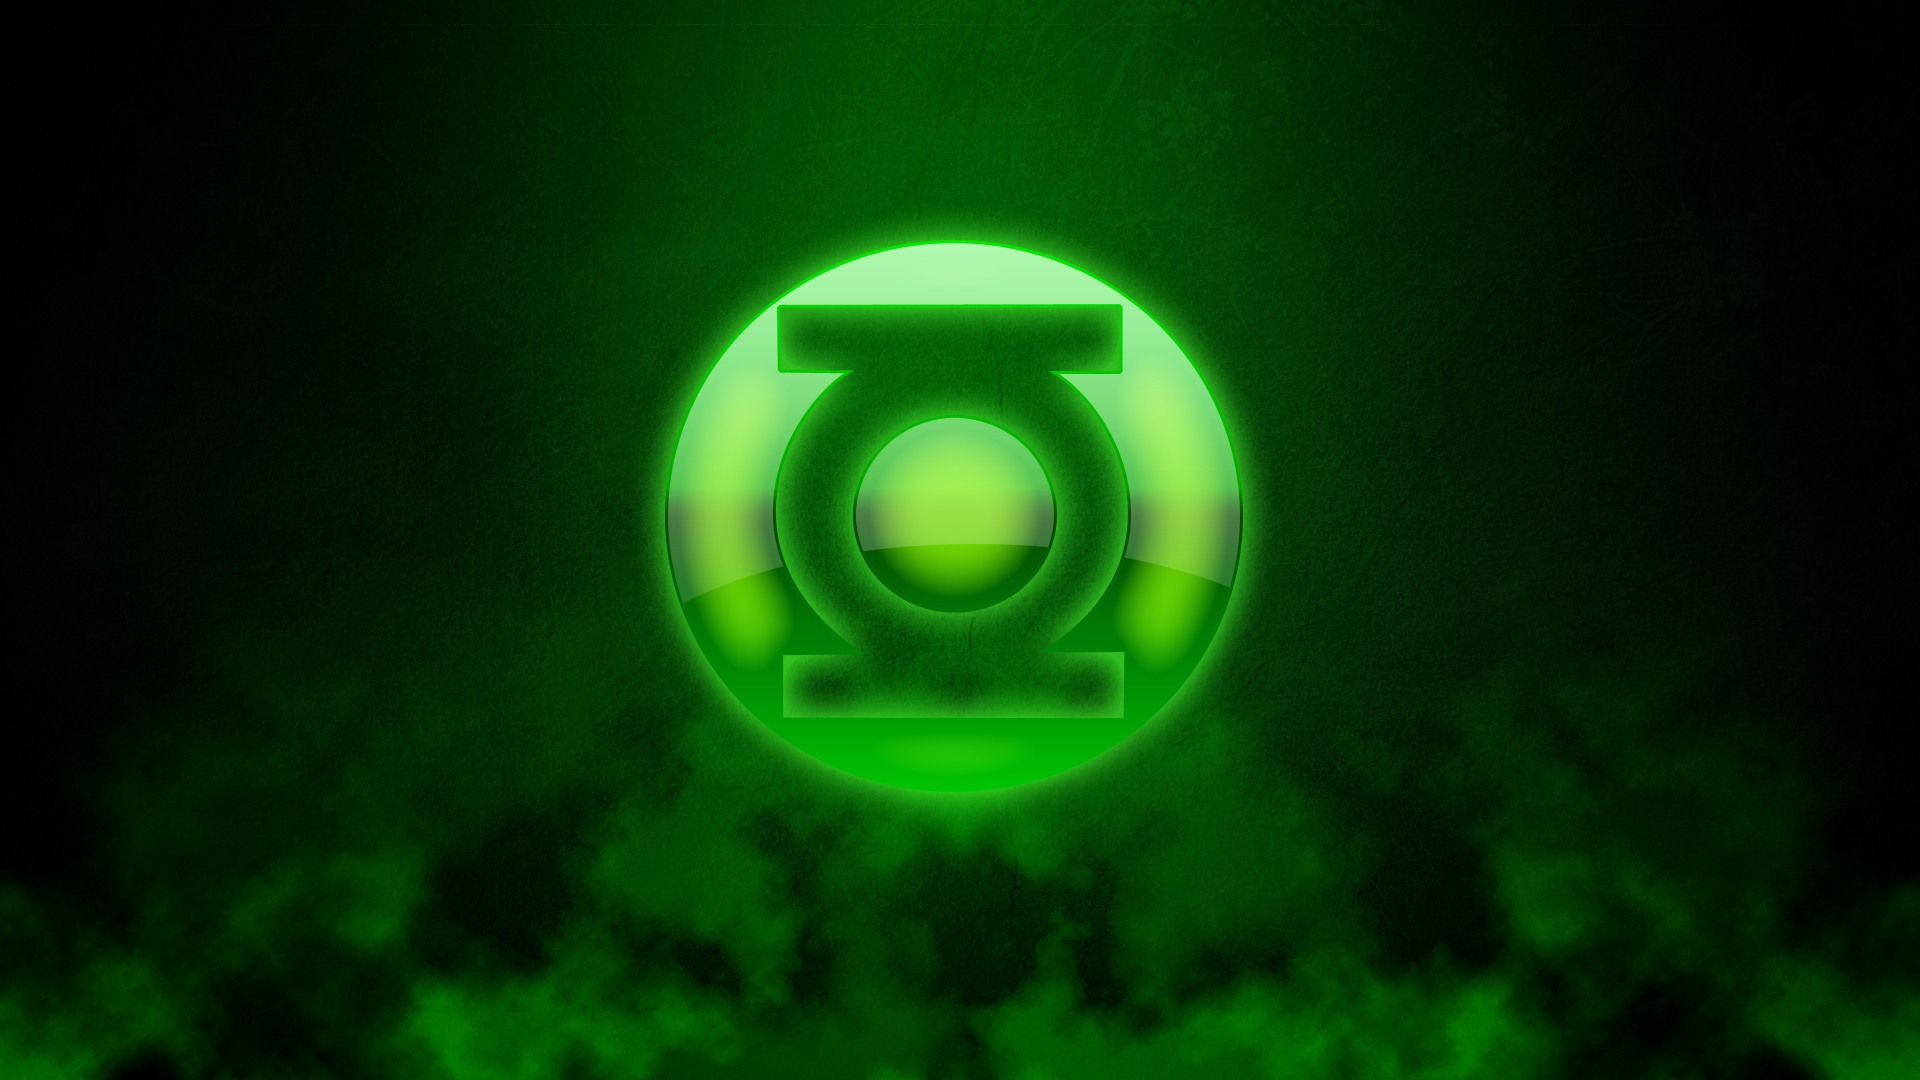 Green Lantern logo HD Desktop Background Wallpapers 182 1920x1080